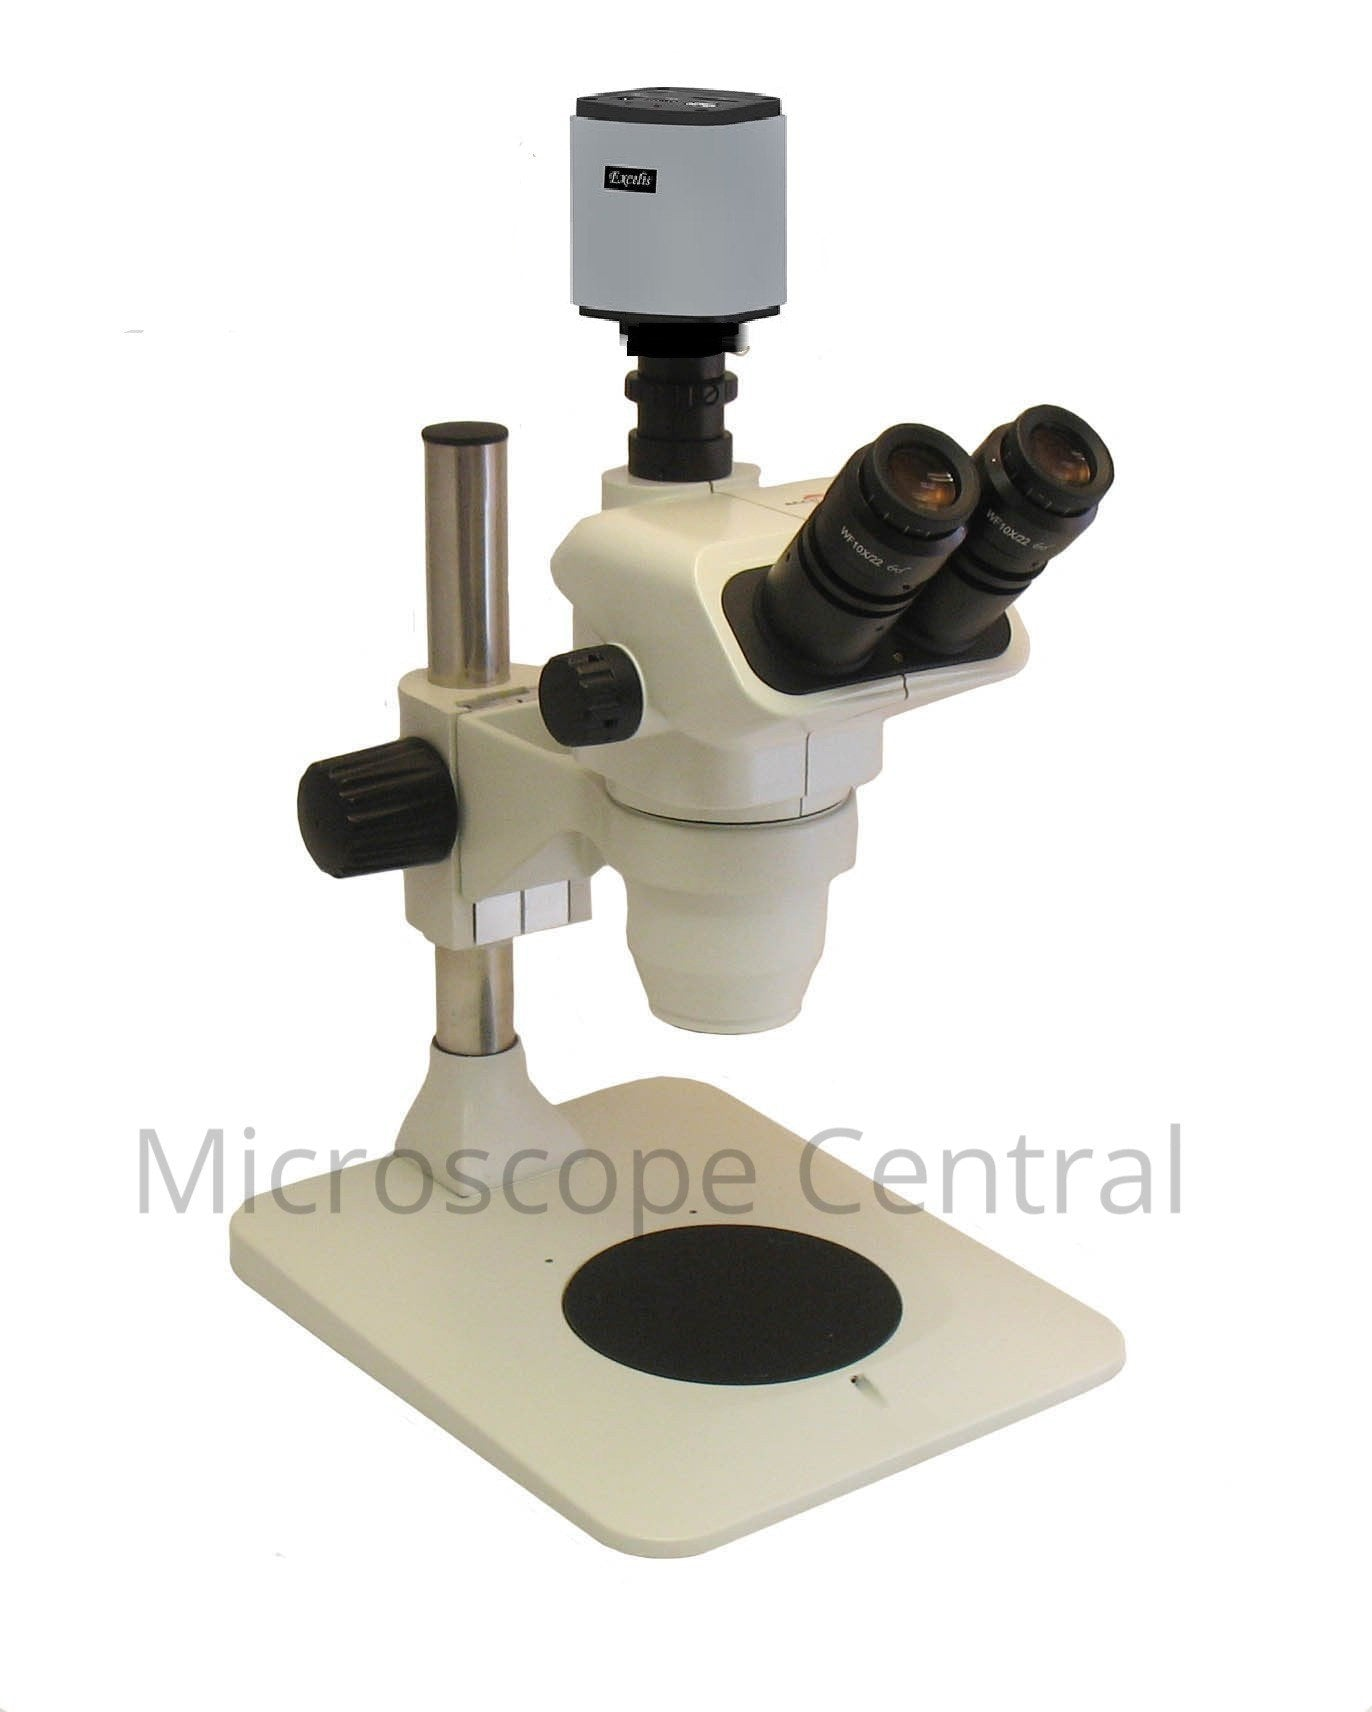 Accu-Scope 3076 Pole Stand Digital Stereo Microscope 0.67x - 4.5x